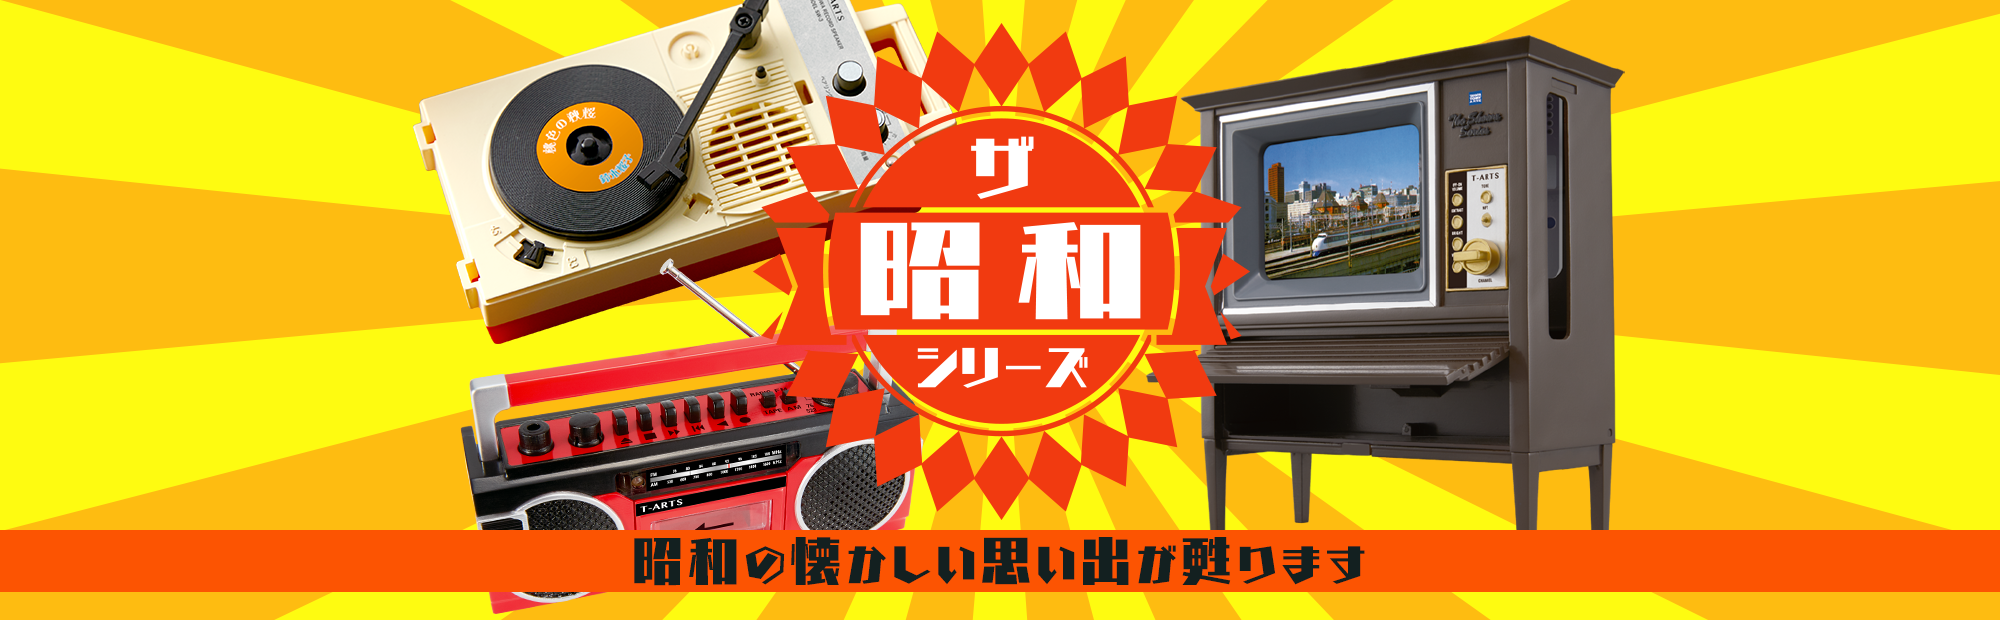 Tomy, , Toy, Takara Tomy Arts Co., Ltd., Television, Shōwa period, Consumer electronics, Logo, , Product, Toy, Vehicle, Games, Brand, Advertising, Logo